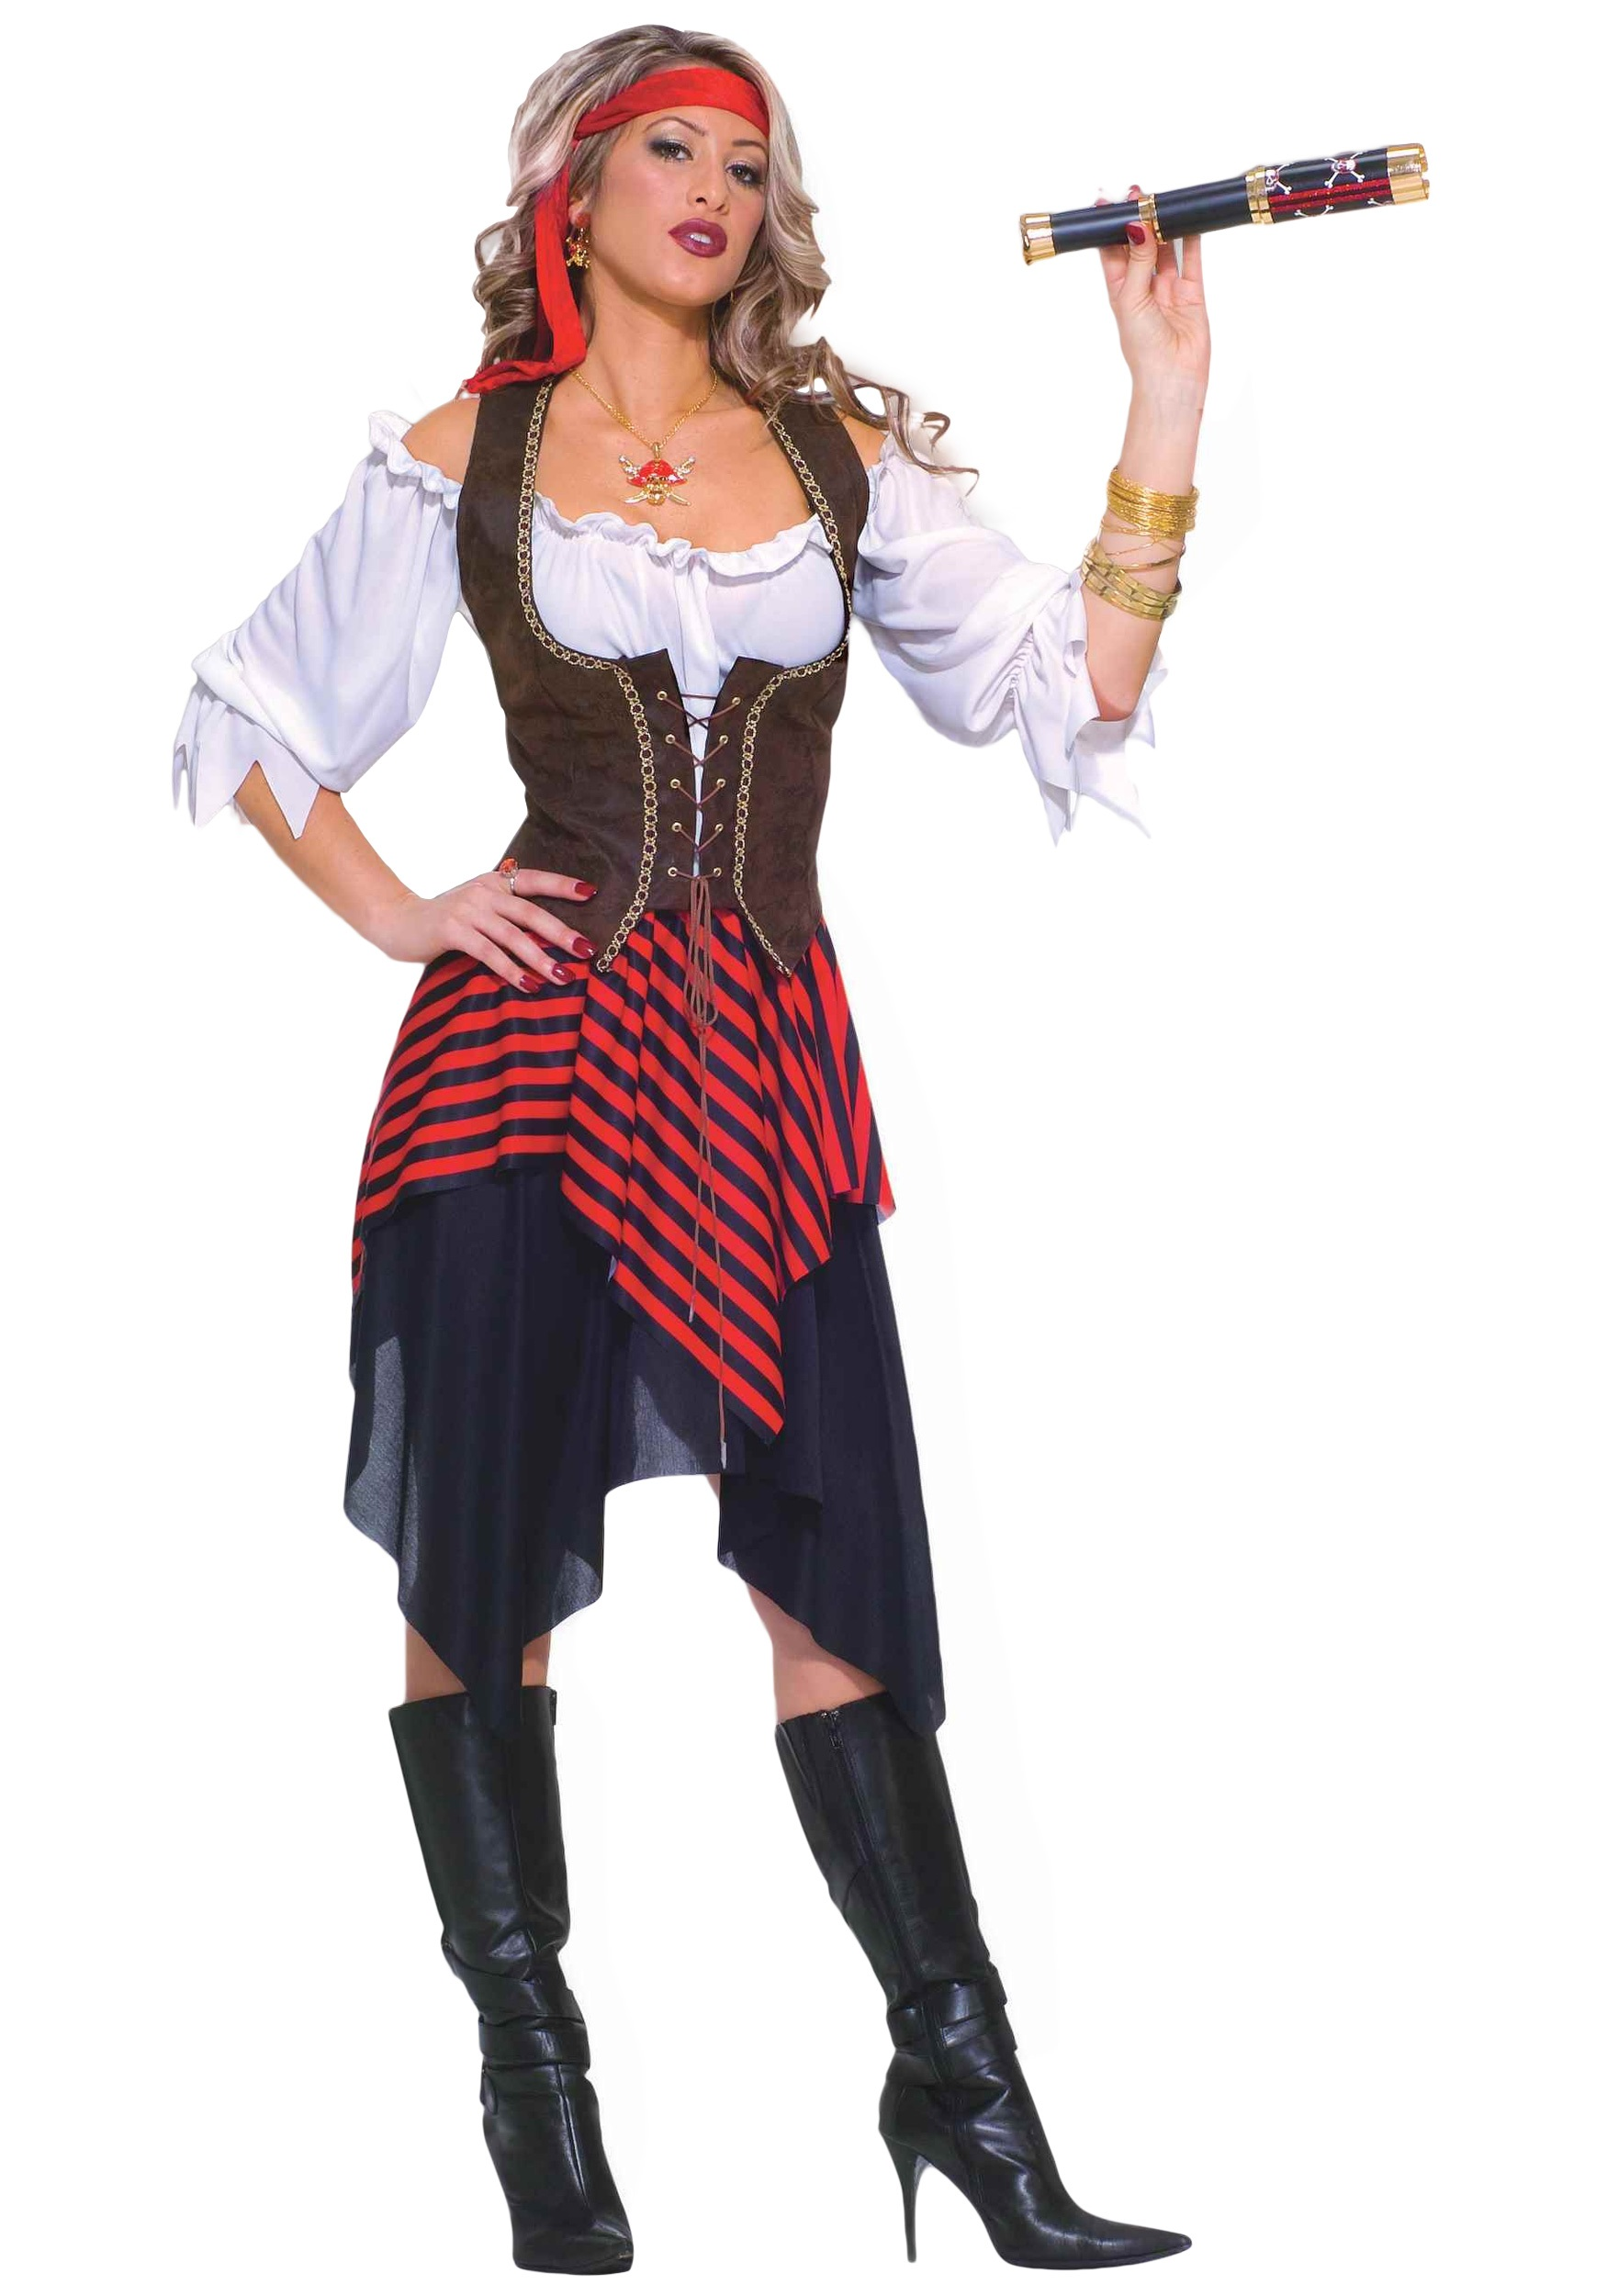 sweet buccaneer costume - Pirate Halloween Costumes Women